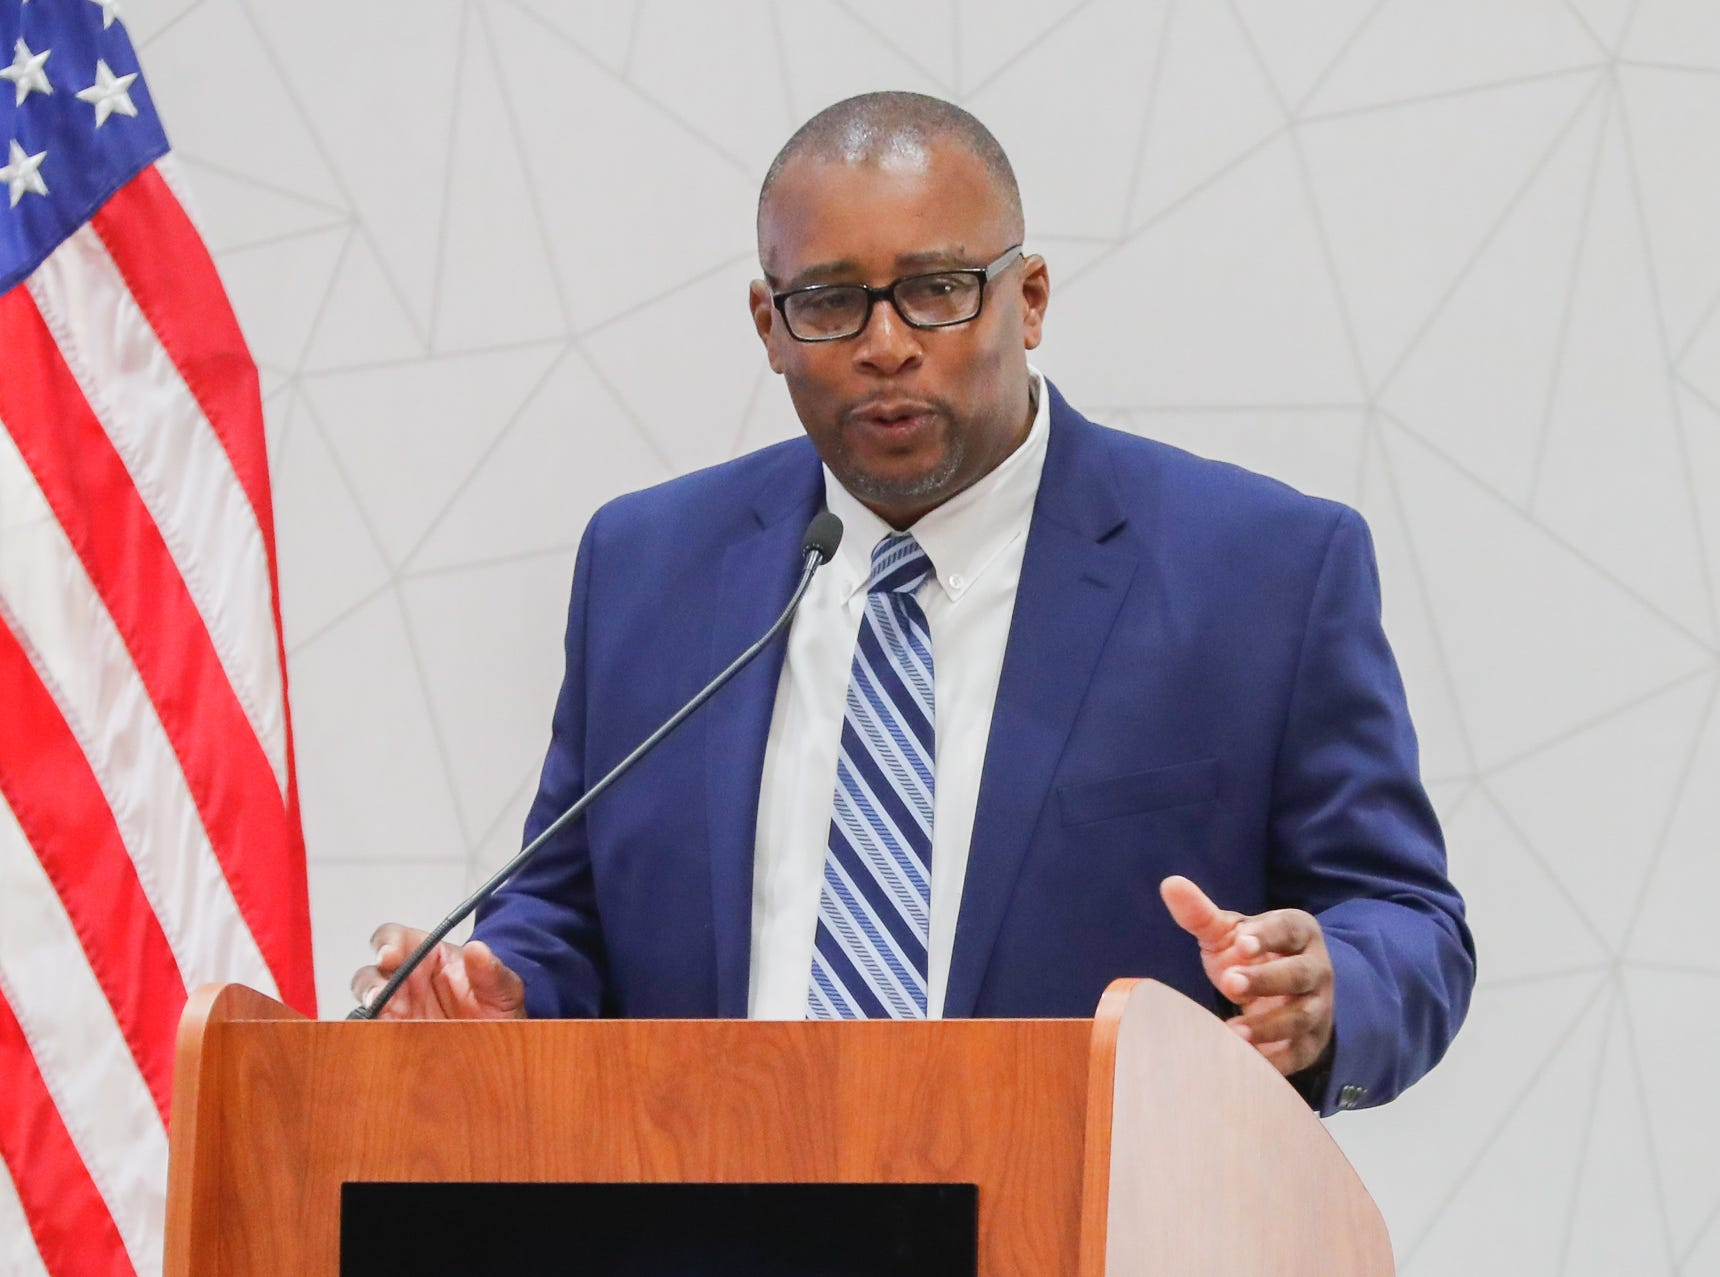 Executive Director of the Indiana Civil Rights Commission, Gregory L. Wilson, speaks  during the Indiana Civil Rights Commission's Fair Housing Law and Policy Conference, held at the Sheraton Indianapolis City Centre Hotel on Wednesday, Oct. 10, 2018.